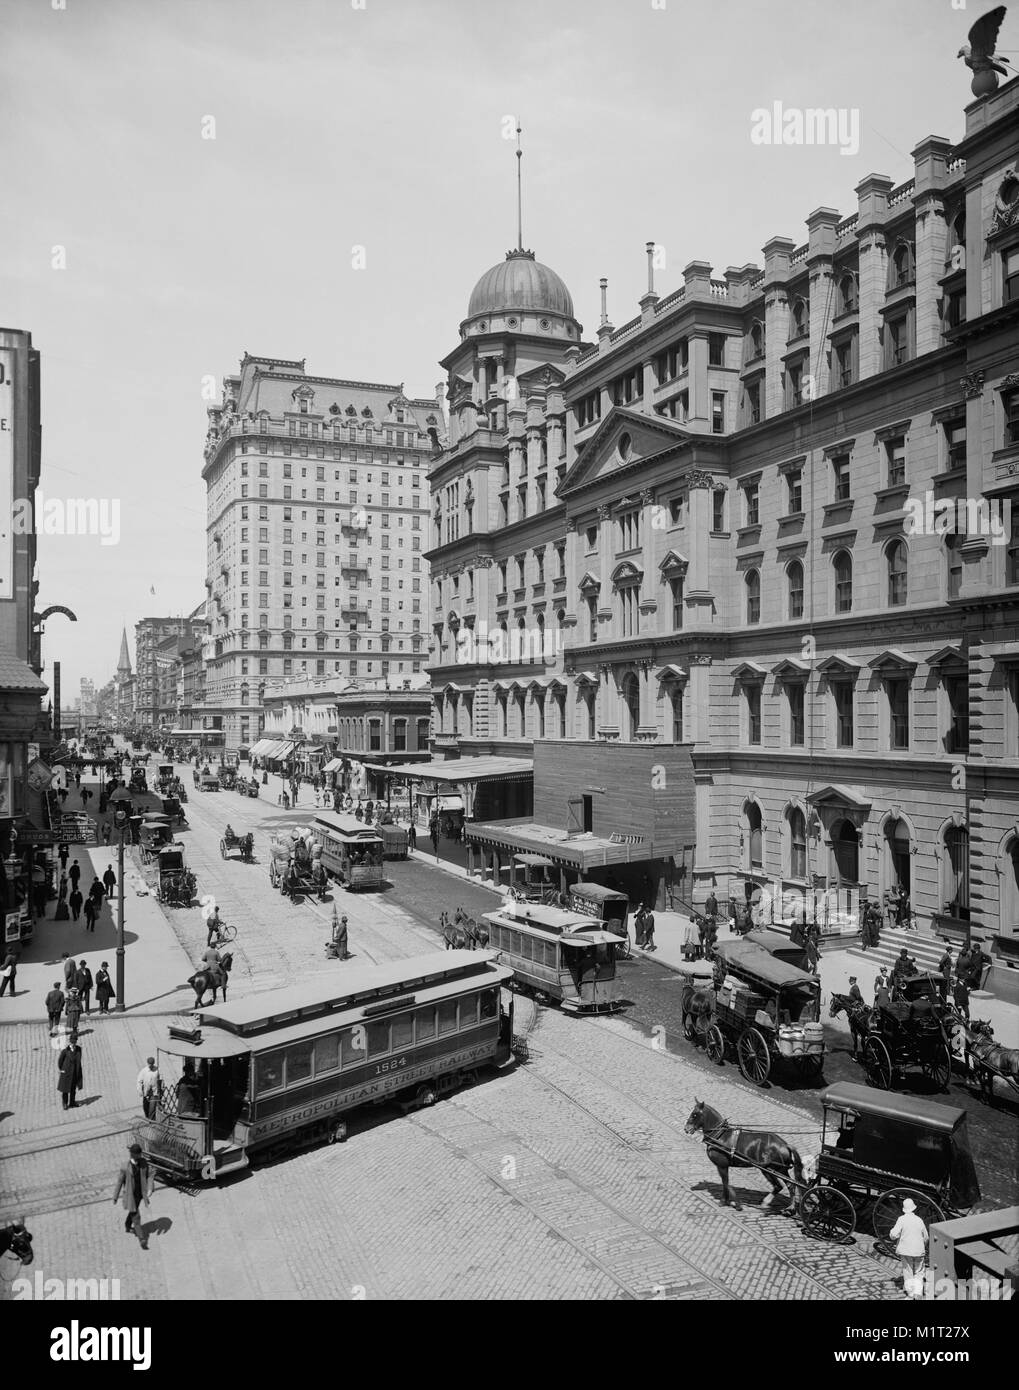 Grand Central Station and Hotel, Manhattan, 42nd Street, New York City, New York, USA, Detroit Publishing Company, - Stock Image